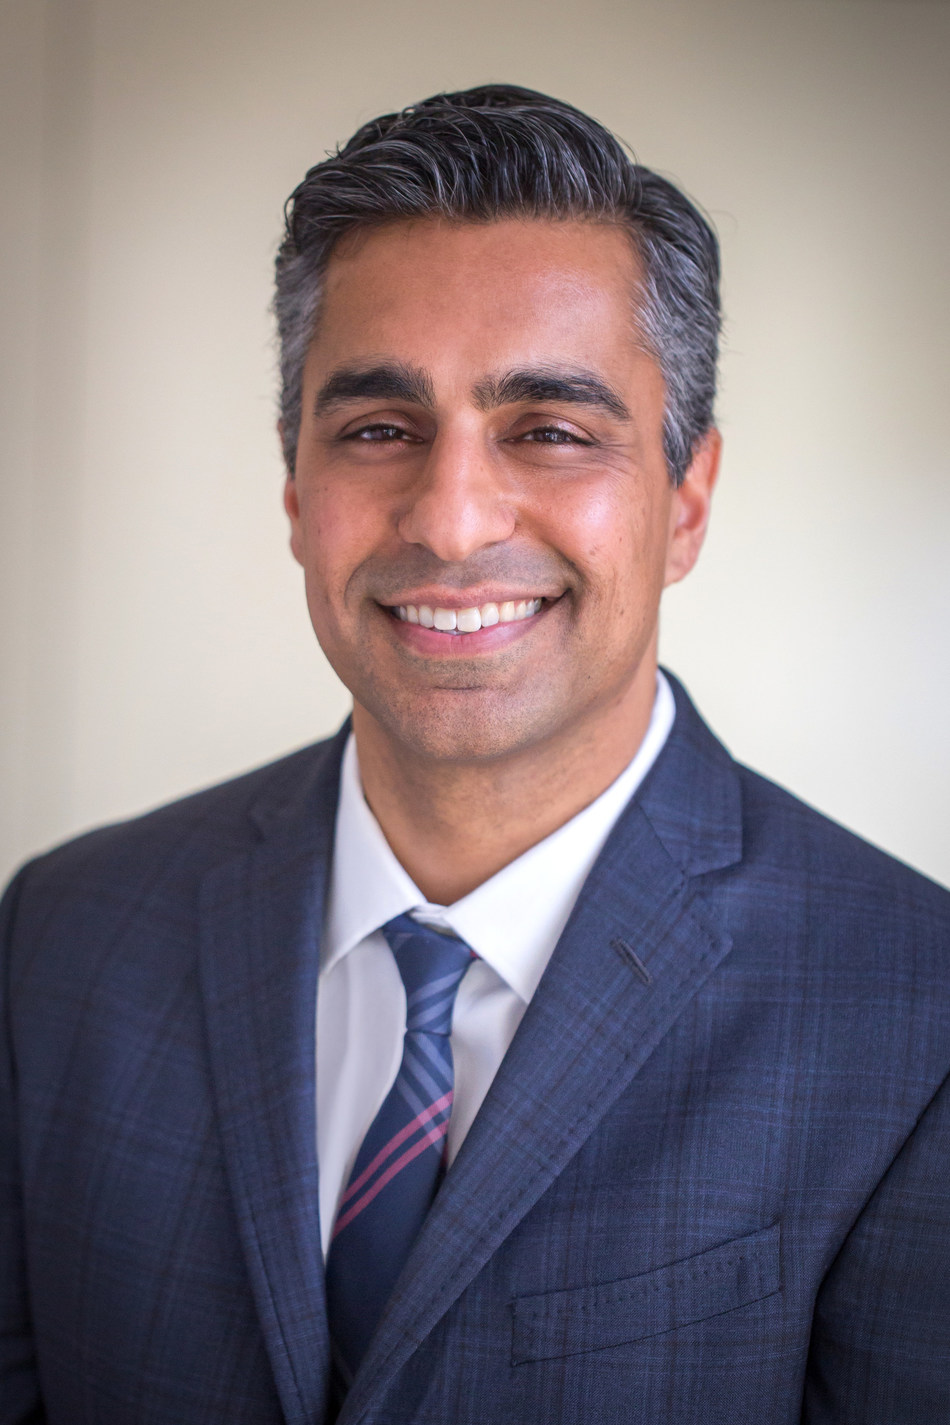 Anuj Vohra has joined Crowell & Moring LLP as a partner in the Government Contracts Group.